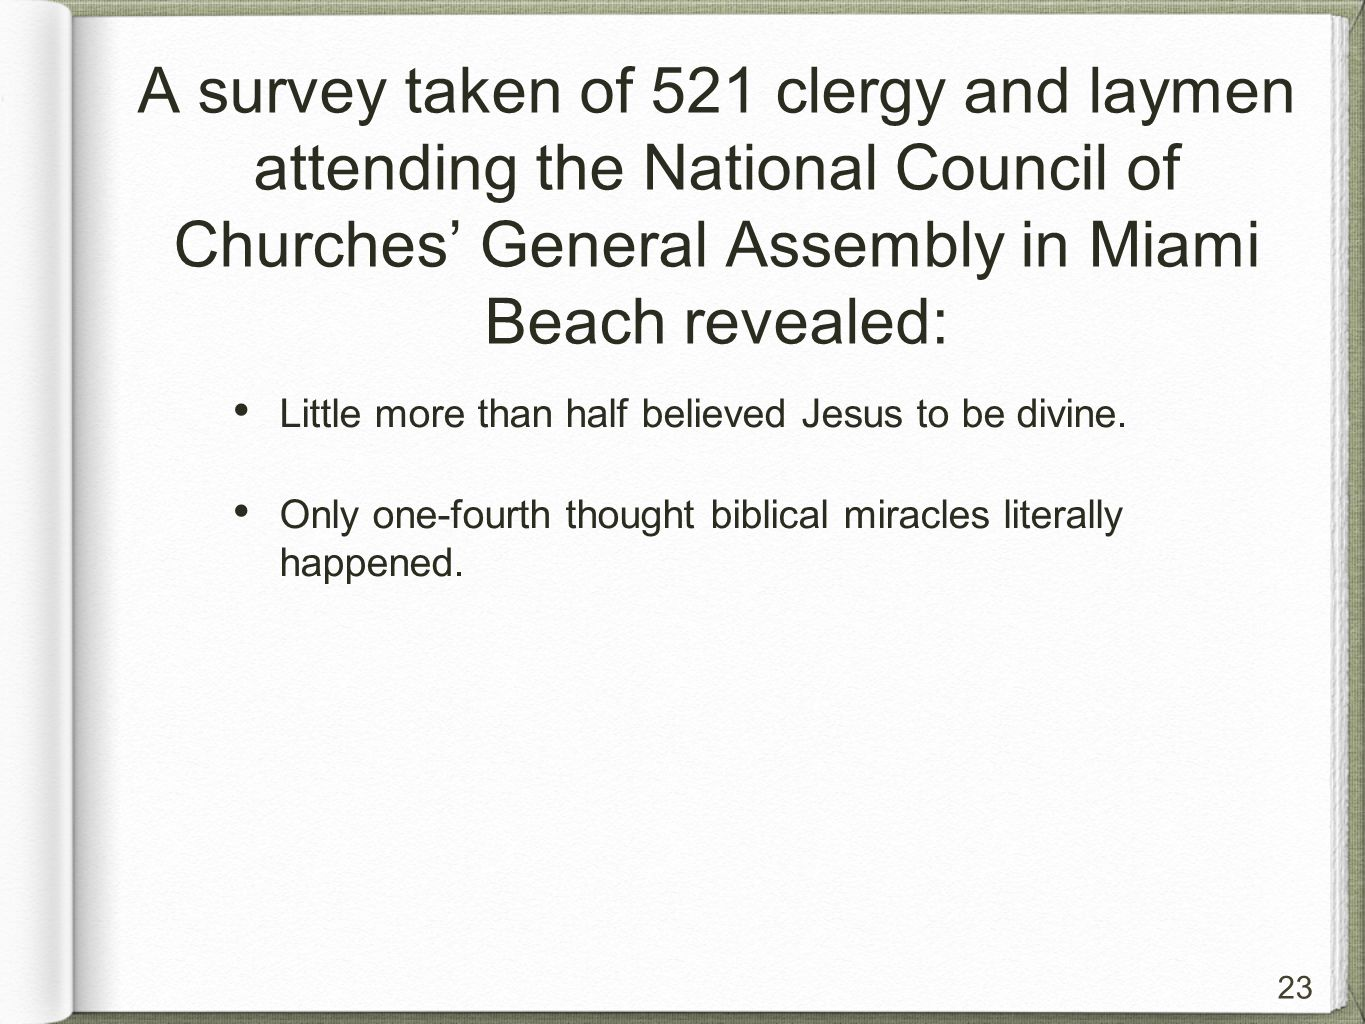 23 A survey taken of 521 clergy and laymen attending the National Council of Churches' General Assembly in Miami Beach revealed: Little more than half believed Jesus to be divine.